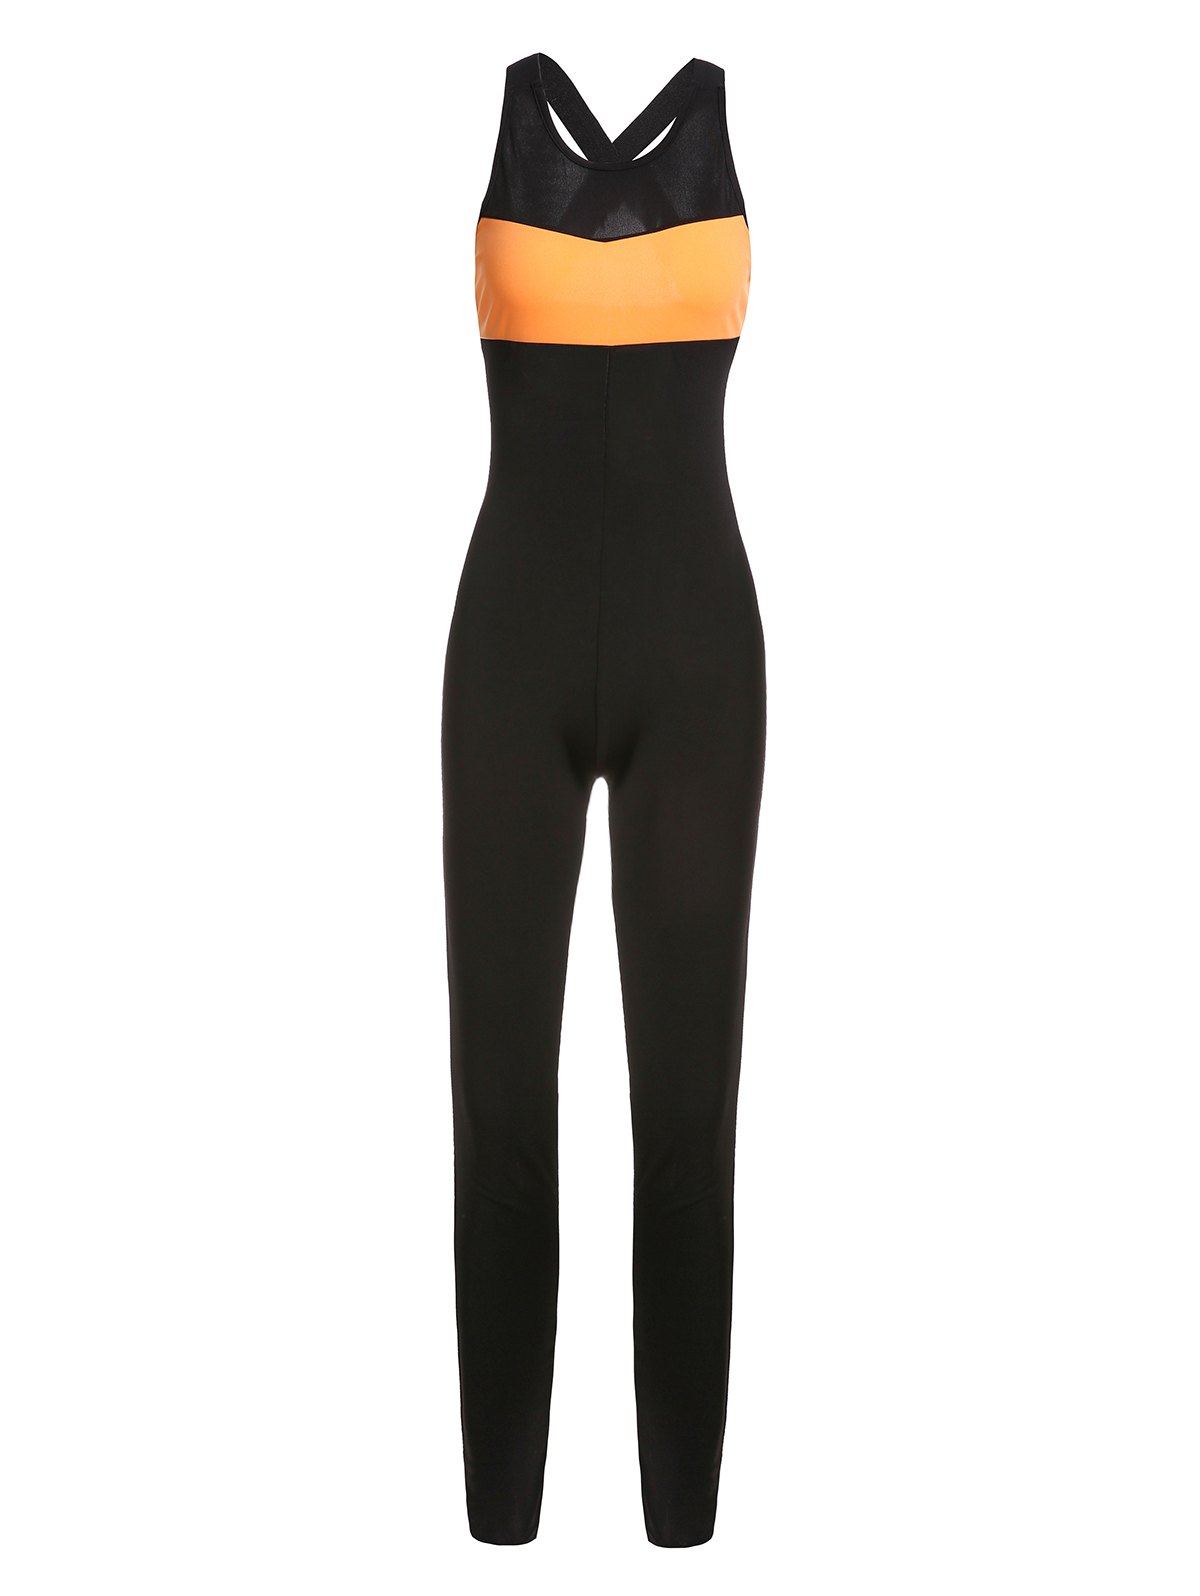 Chic See-Through Hollow Out Sport Jumpsuit For Women